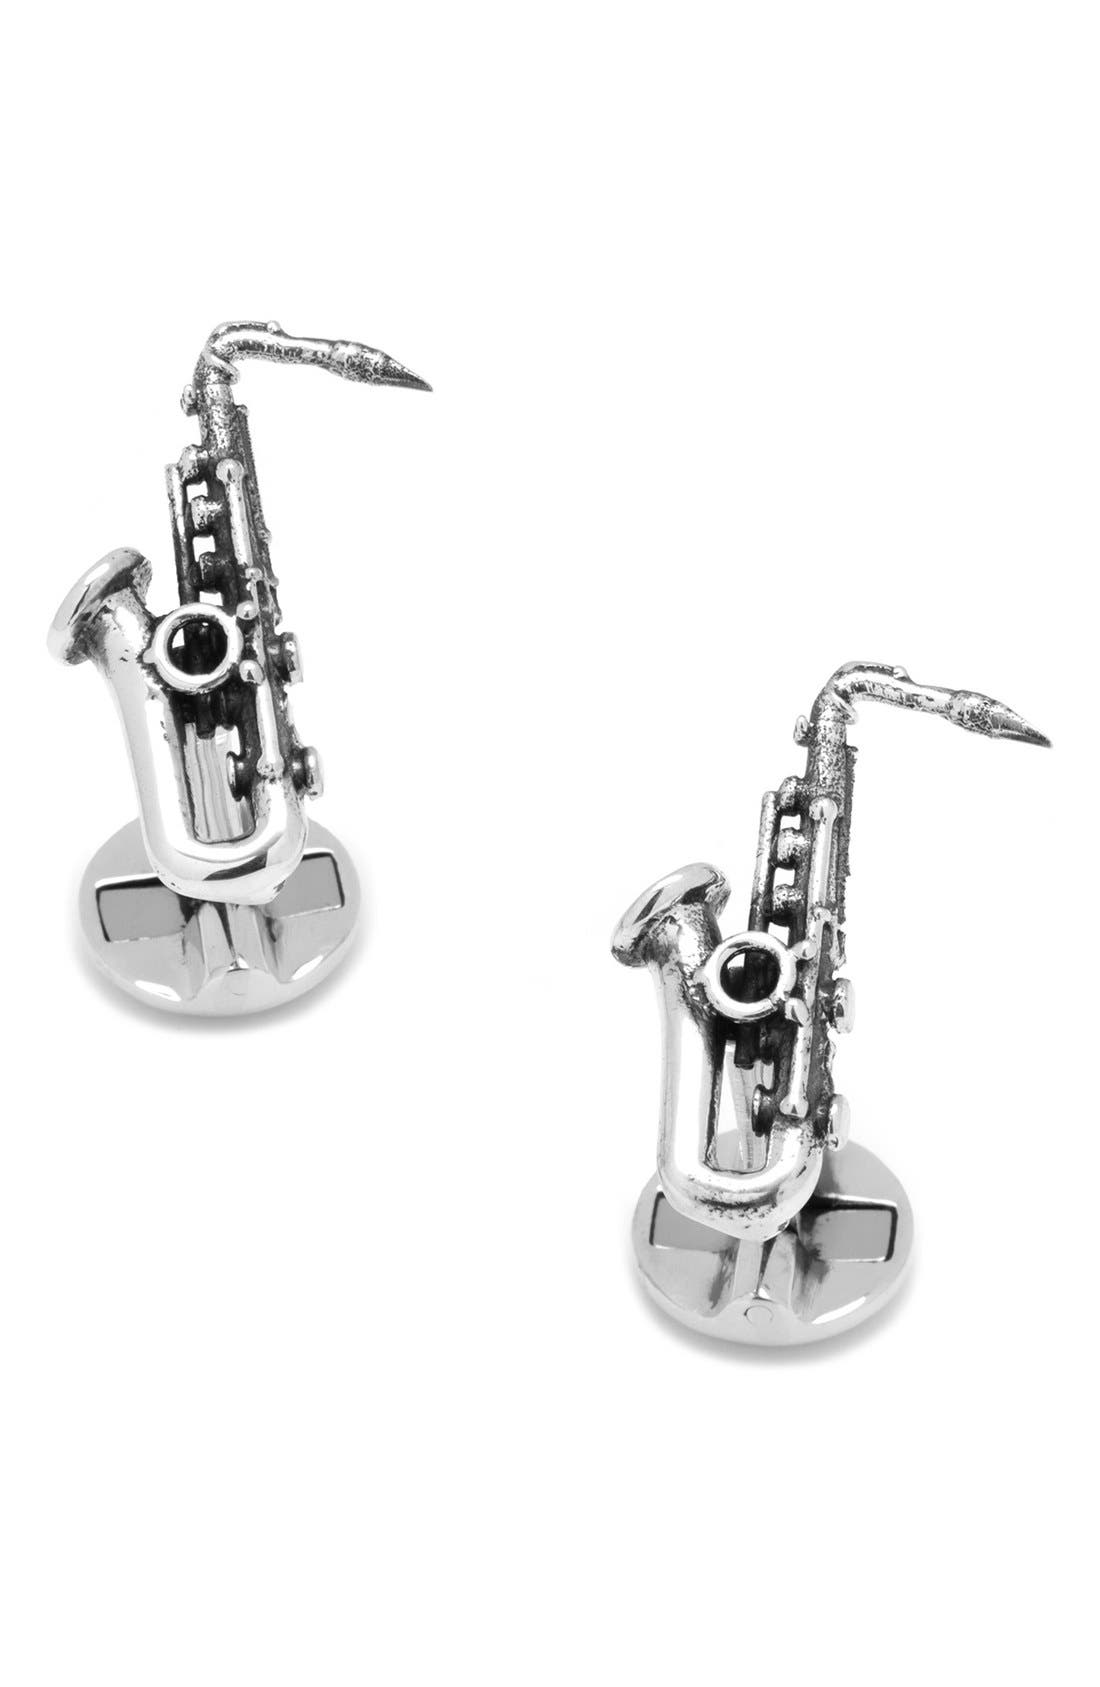 Main Image - Ox and Bull Trading Co. Saxophone Cuff Links